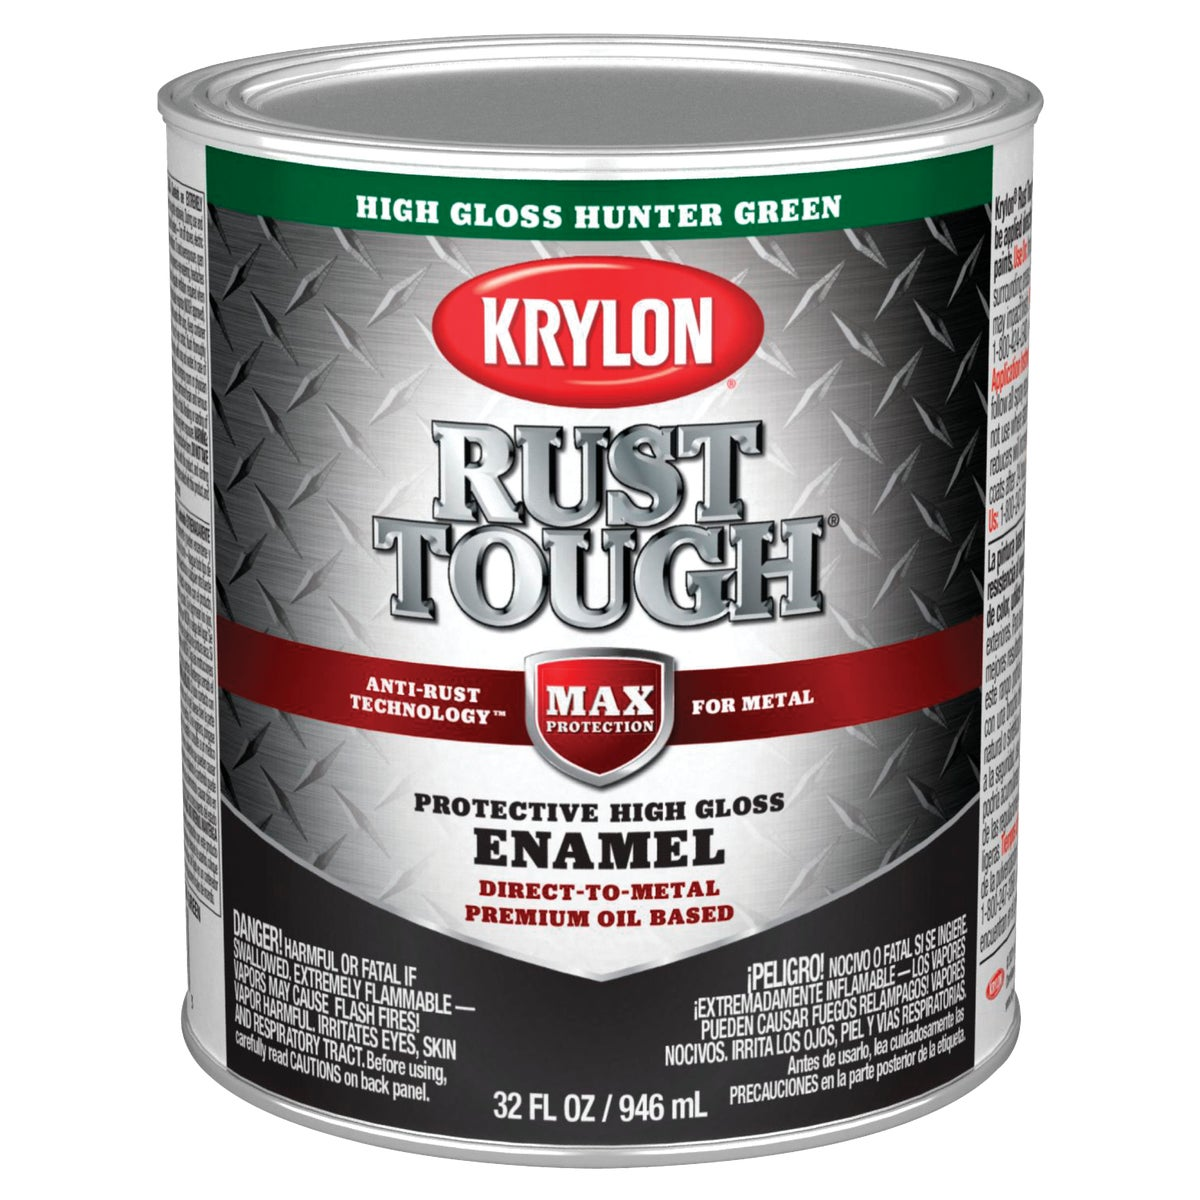 HUNTER GREEN RUST ENAMEL - 044.0021844.005 by Valspar Corp